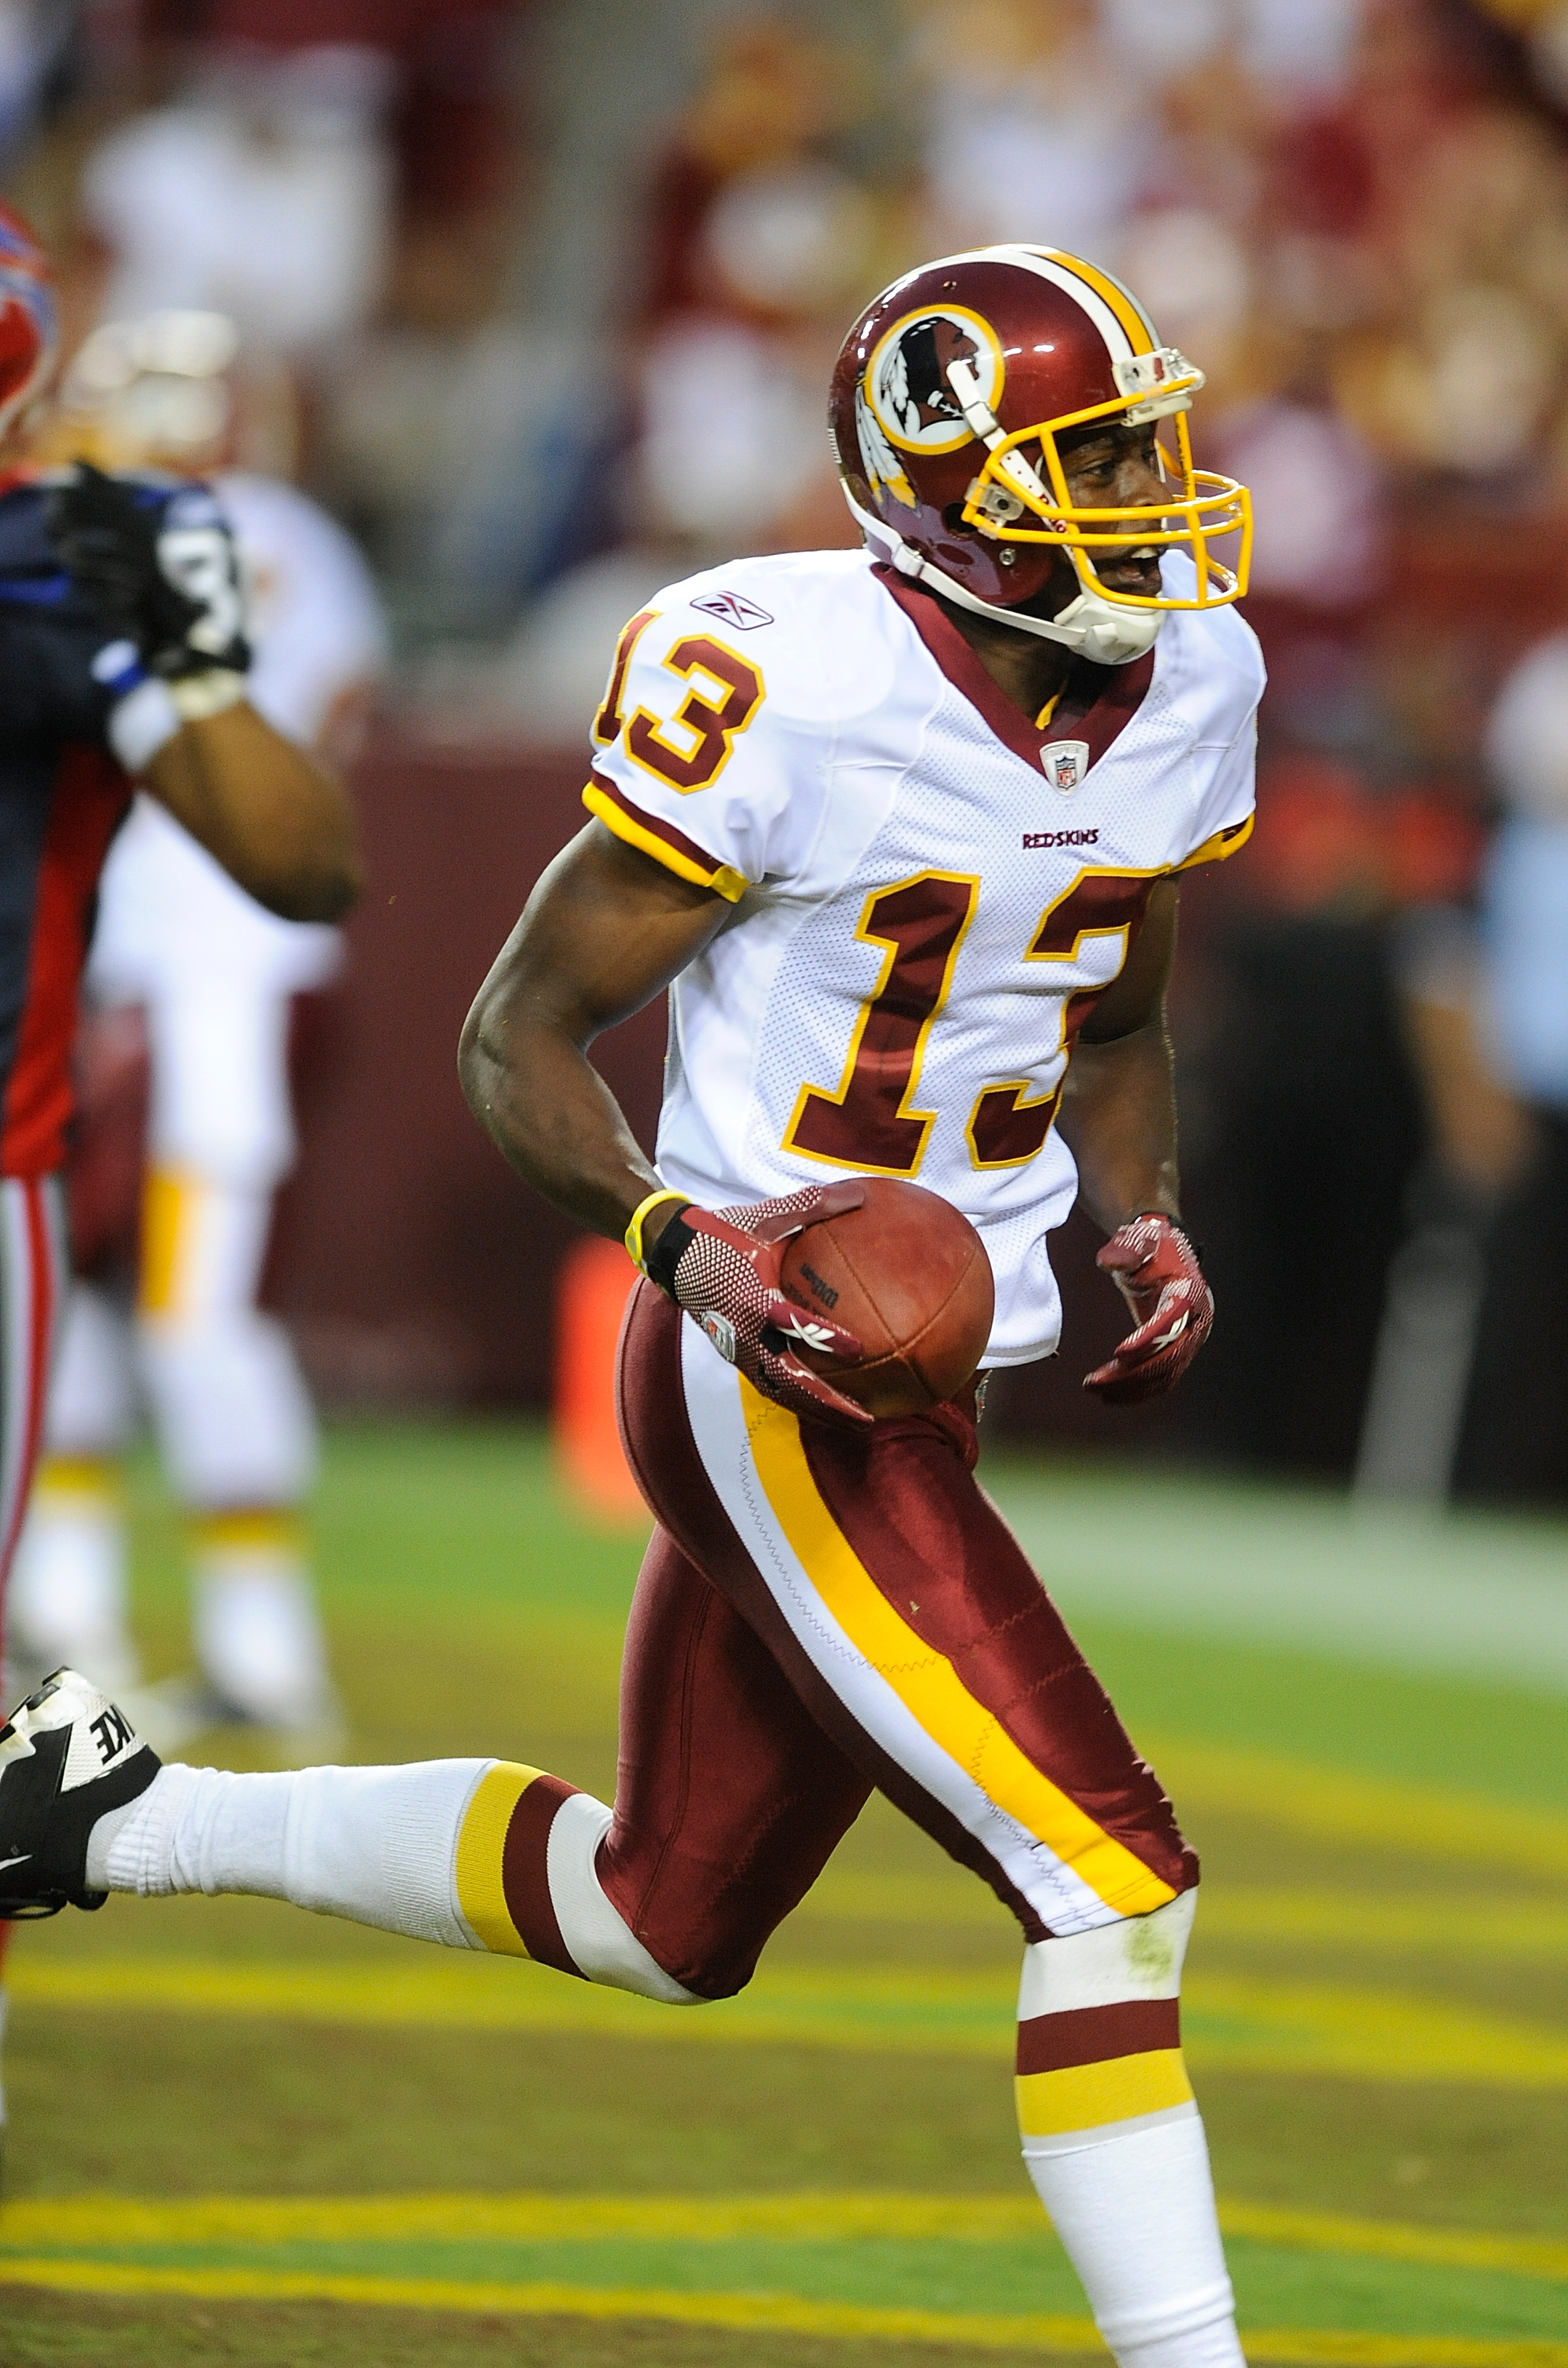 Redskins Wide Out Anthony Armstrong